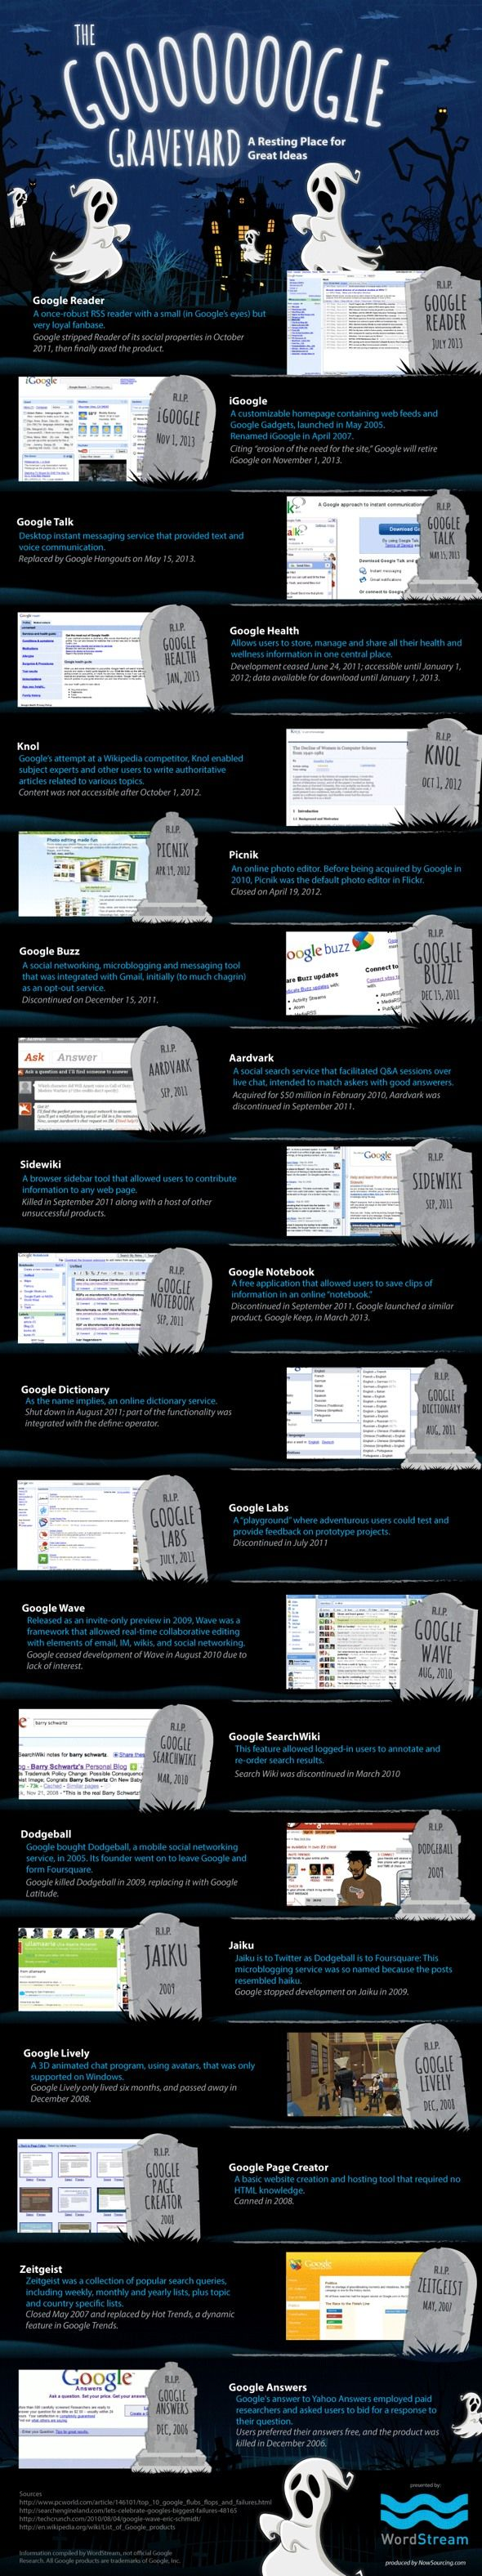 What Has Google Killed In The Past 7 Years? http://www.makeuseof.com/tag/what-has-google-killed-in-the-past-7-years/